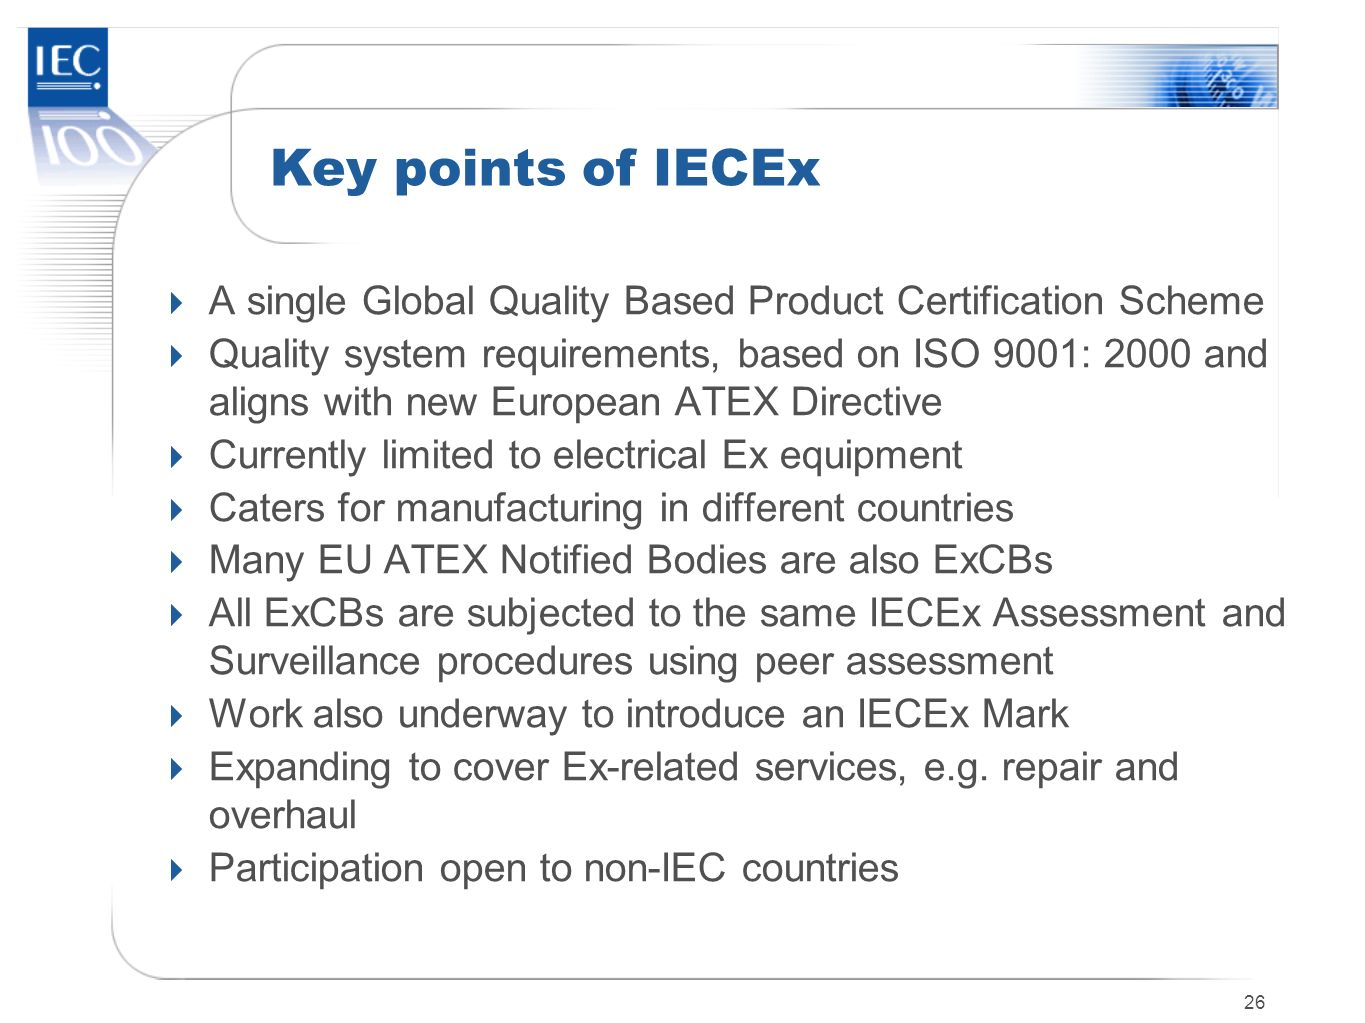 Key points of IECEx A single Global Quality Based Product Certification Scheme.